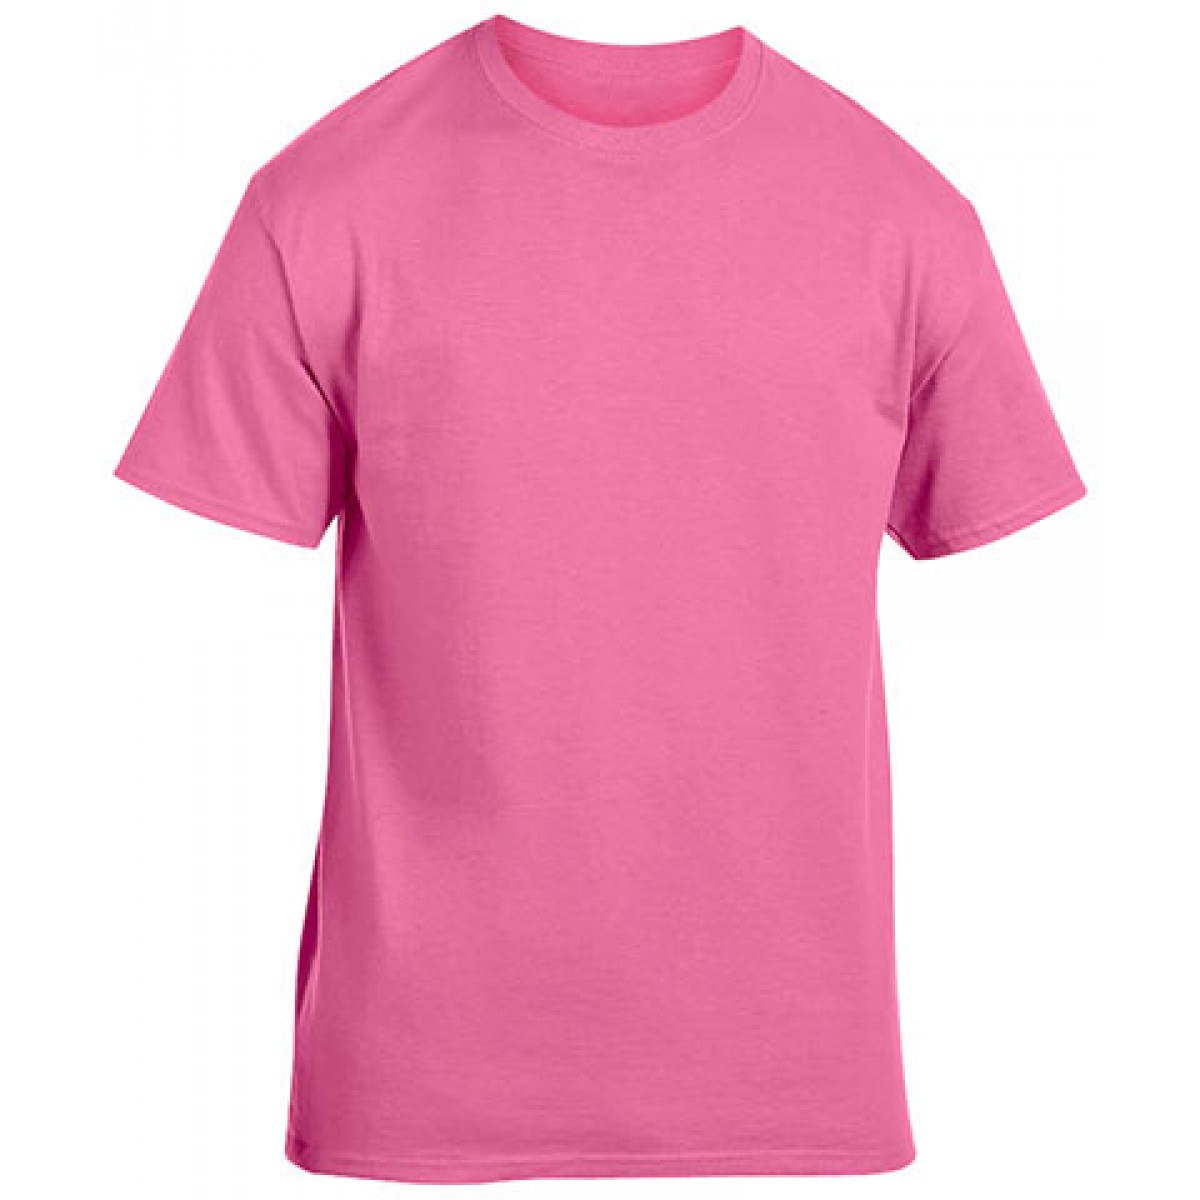 Cotton Short Sleeve T-Shirt-Safety Pink-XS